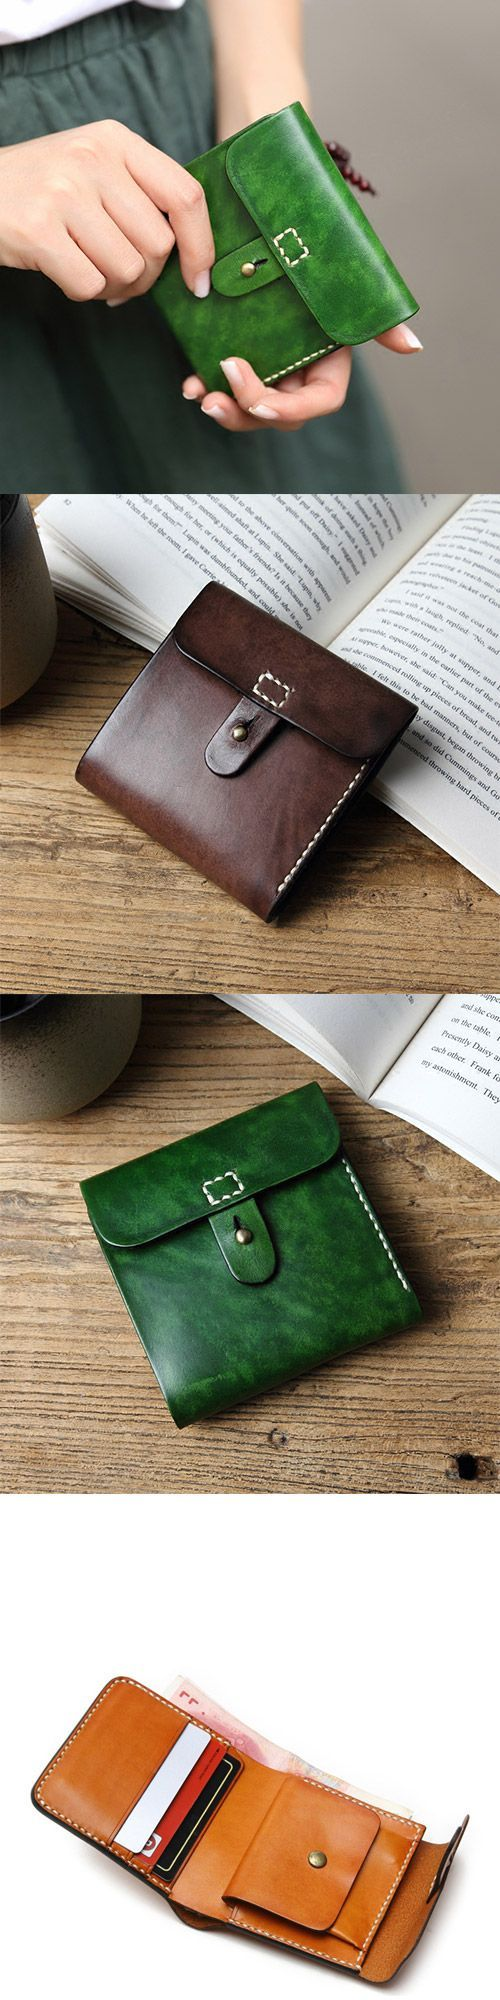 Handmade leather vintage women short wallet purse wallet - leather ladies purse, cute summer purses, designer handbags online *sponsored https://www.pinterest.com/purses_handbags/ https://www.pinterest.com/explore/handbag/ https://www.pinterest.com/purses